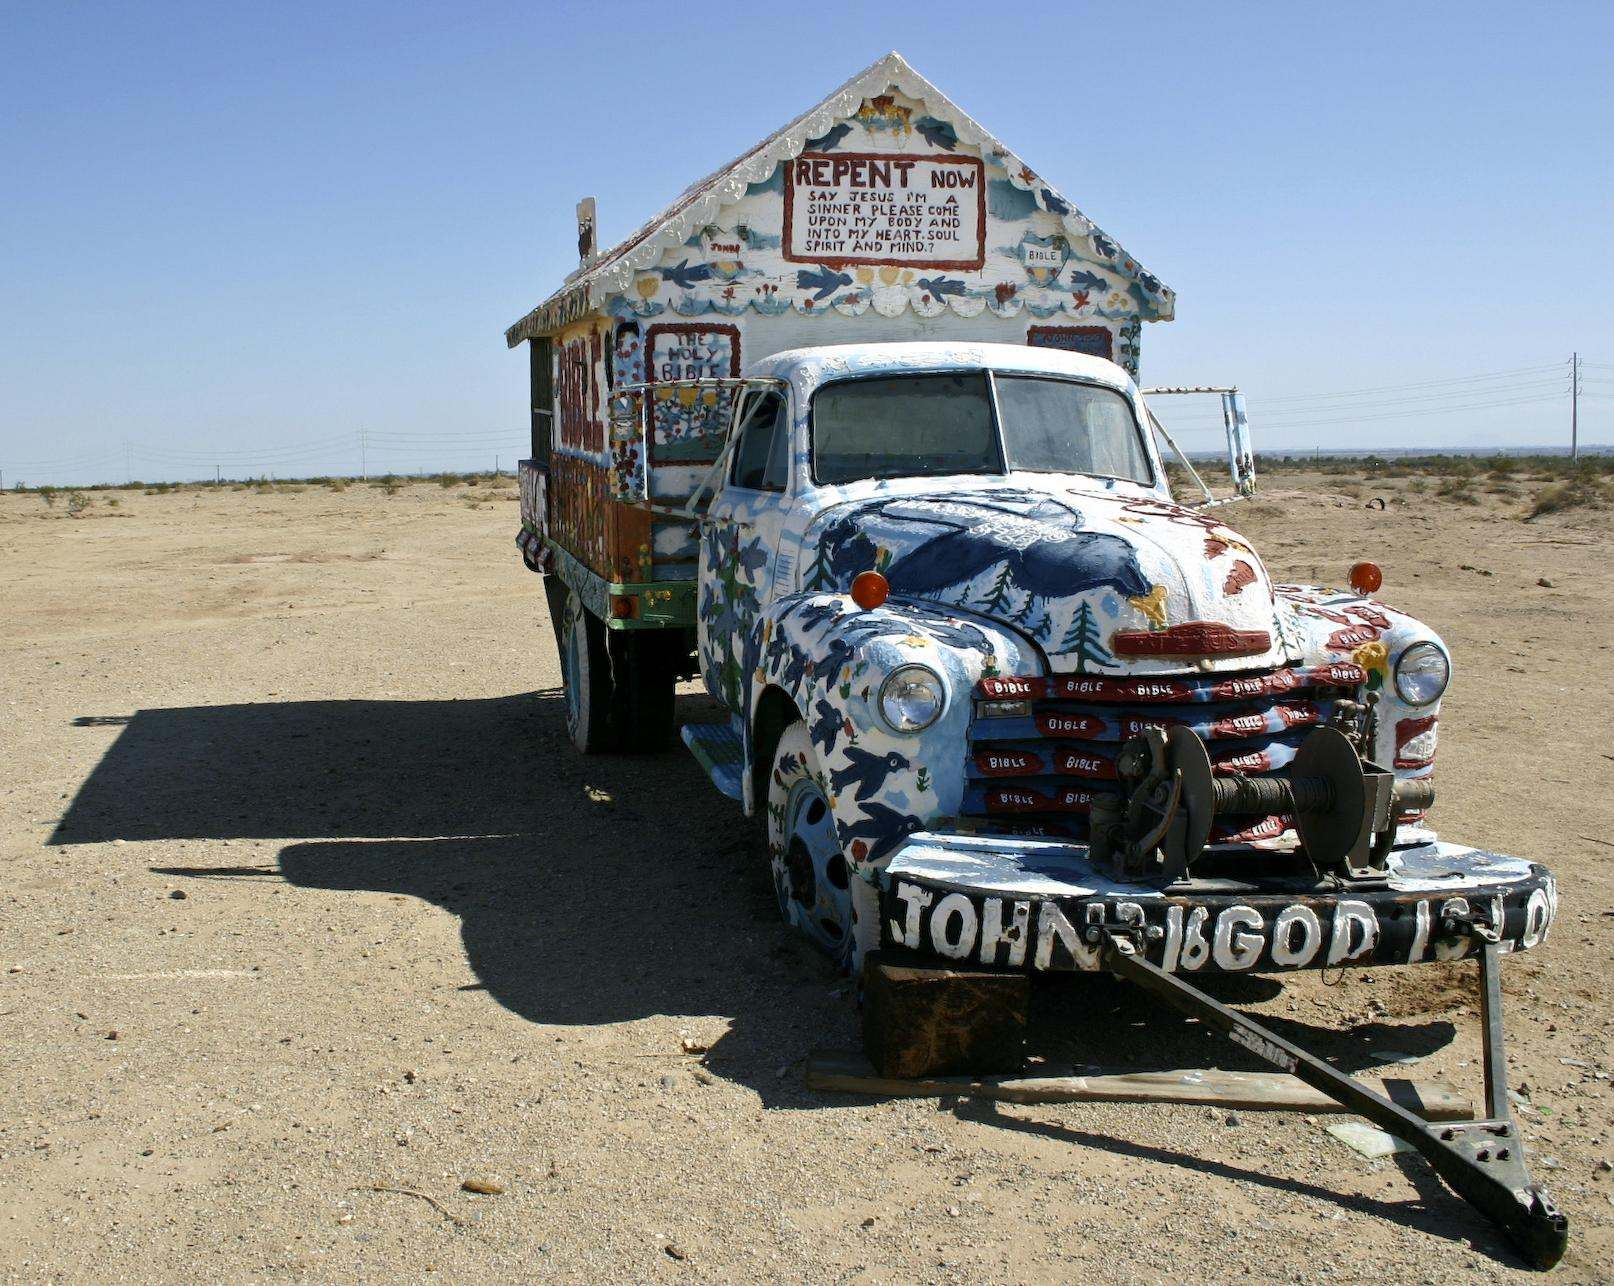 salvation mountain6 Truly Unique Salvation Mountain in California